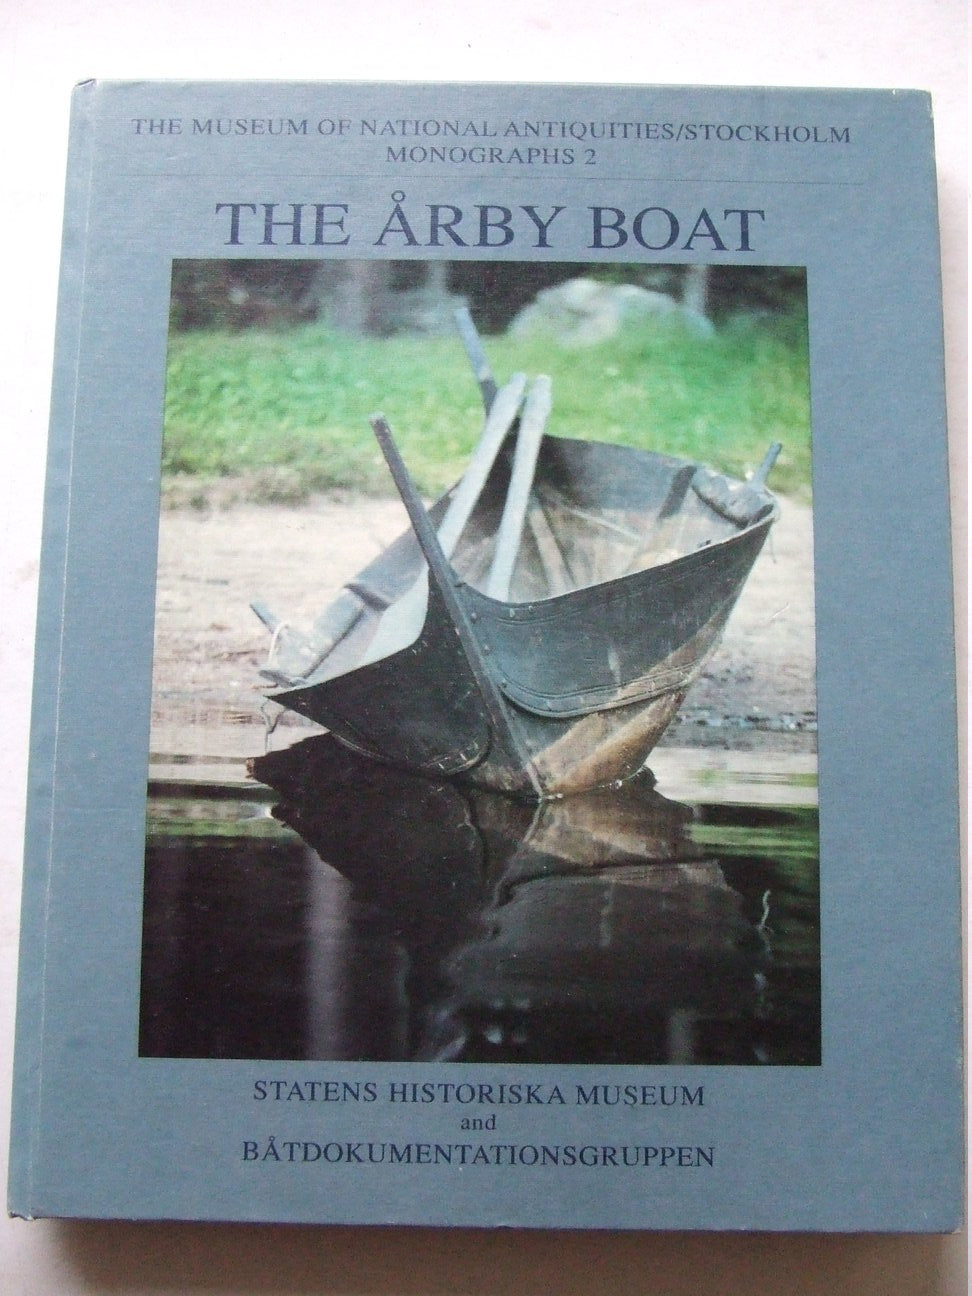 The Arby Boat